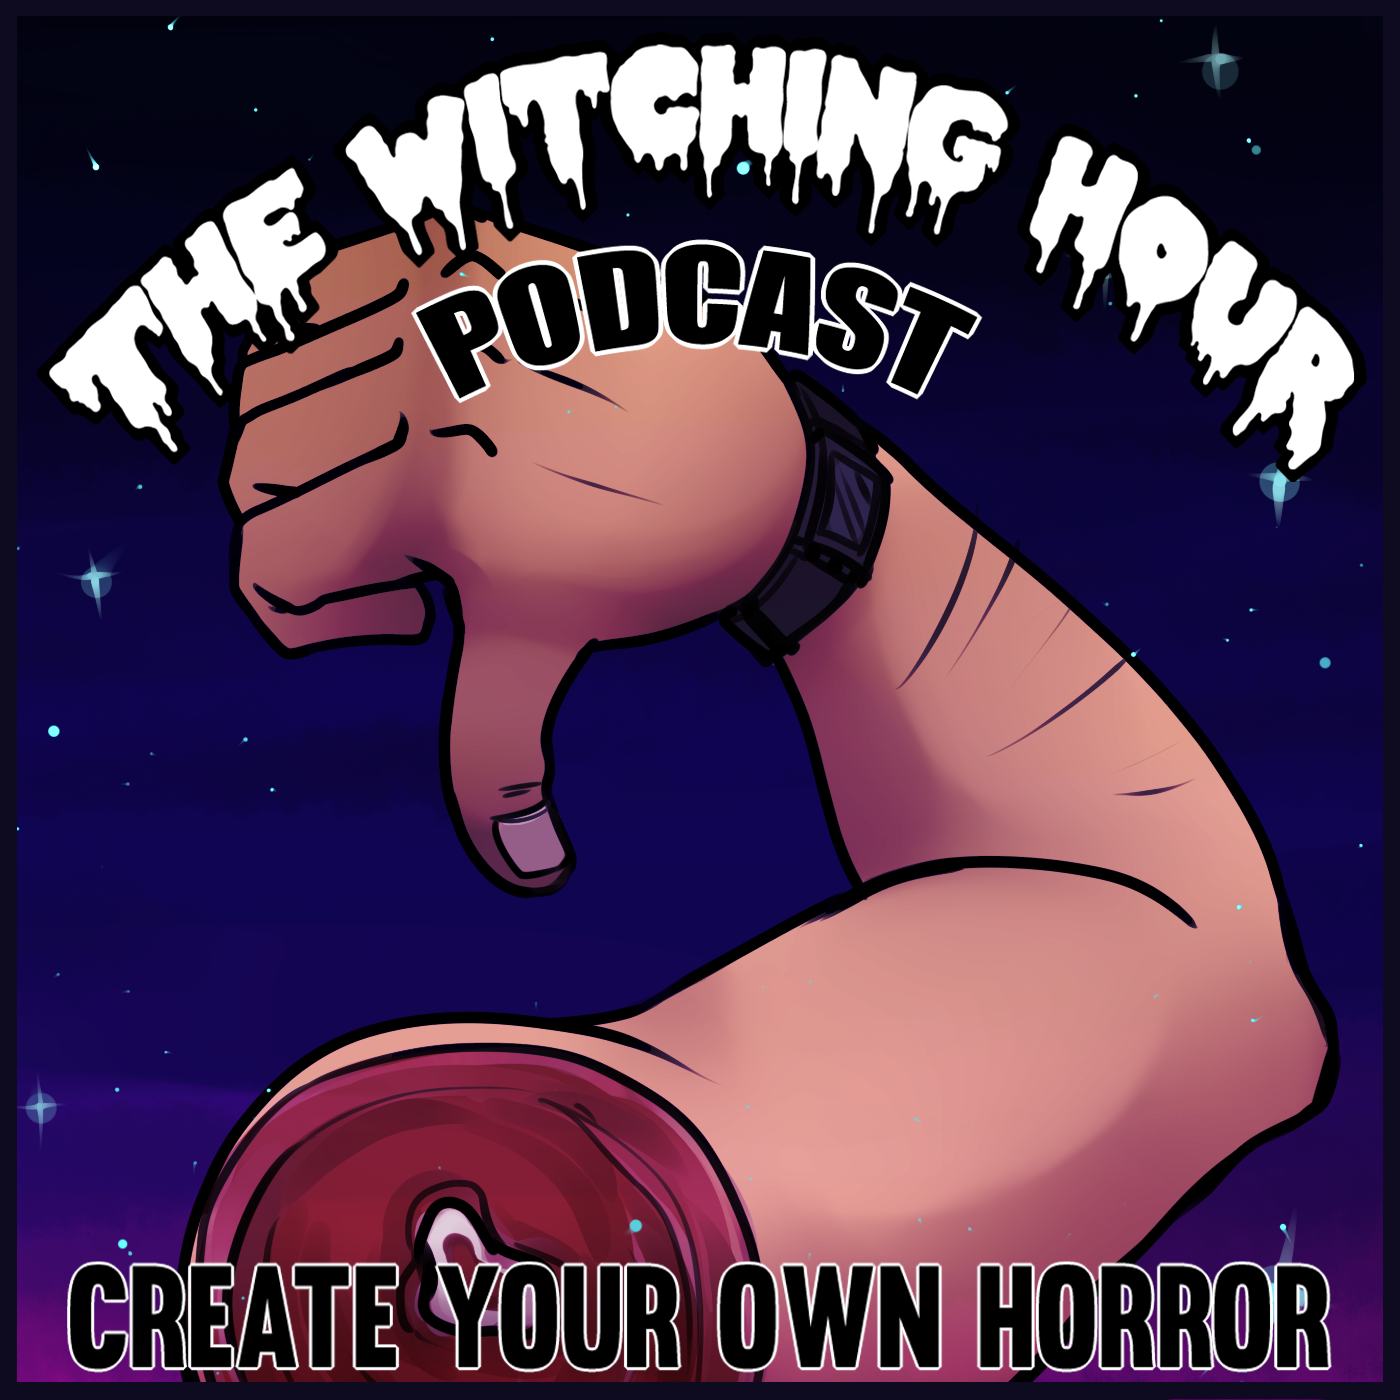 witching_hour_podcast_cloverfield_paradox